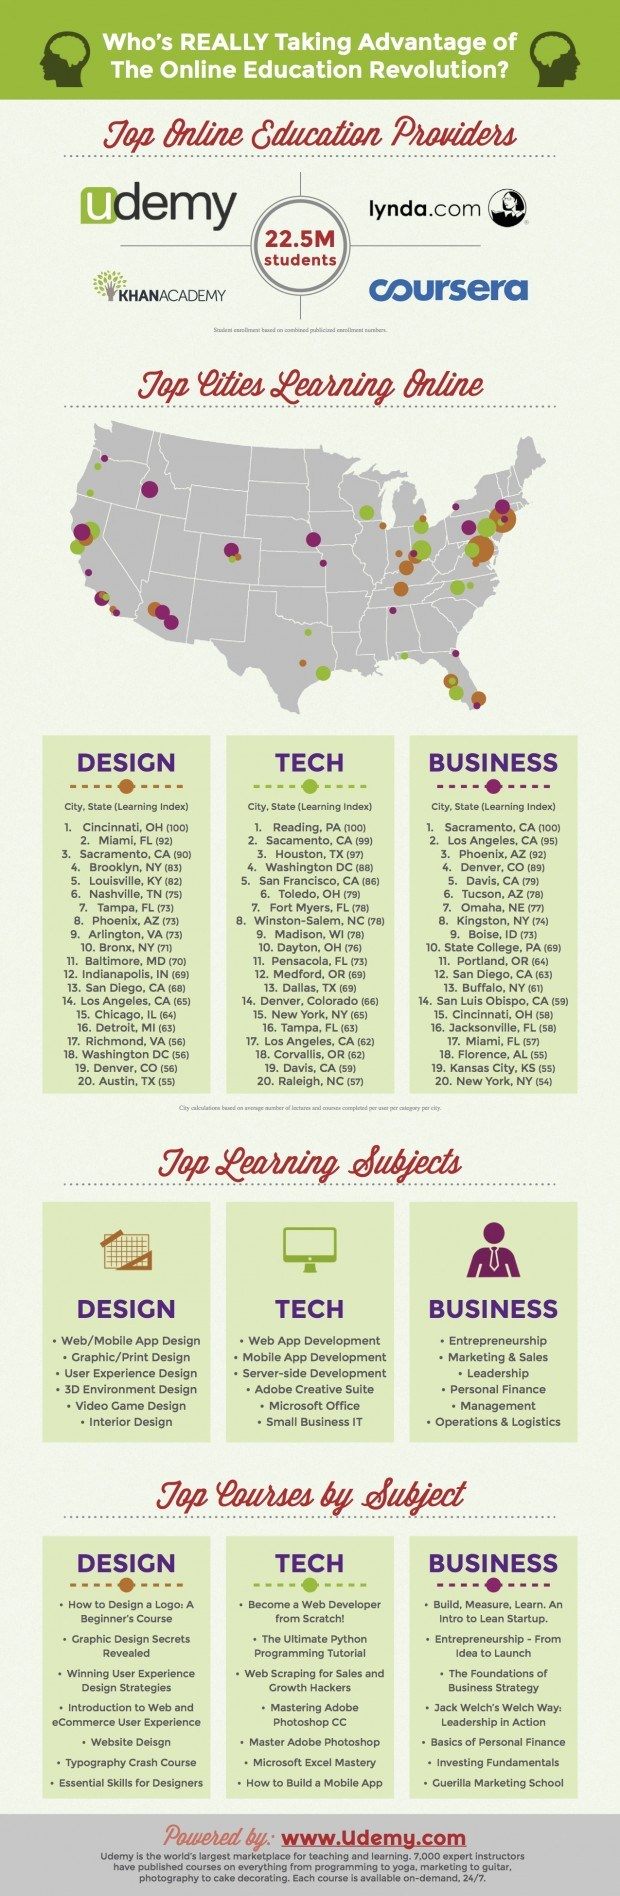 Who's-Taking-Advantage-of-the-Online-Education-Revolution-Infographic